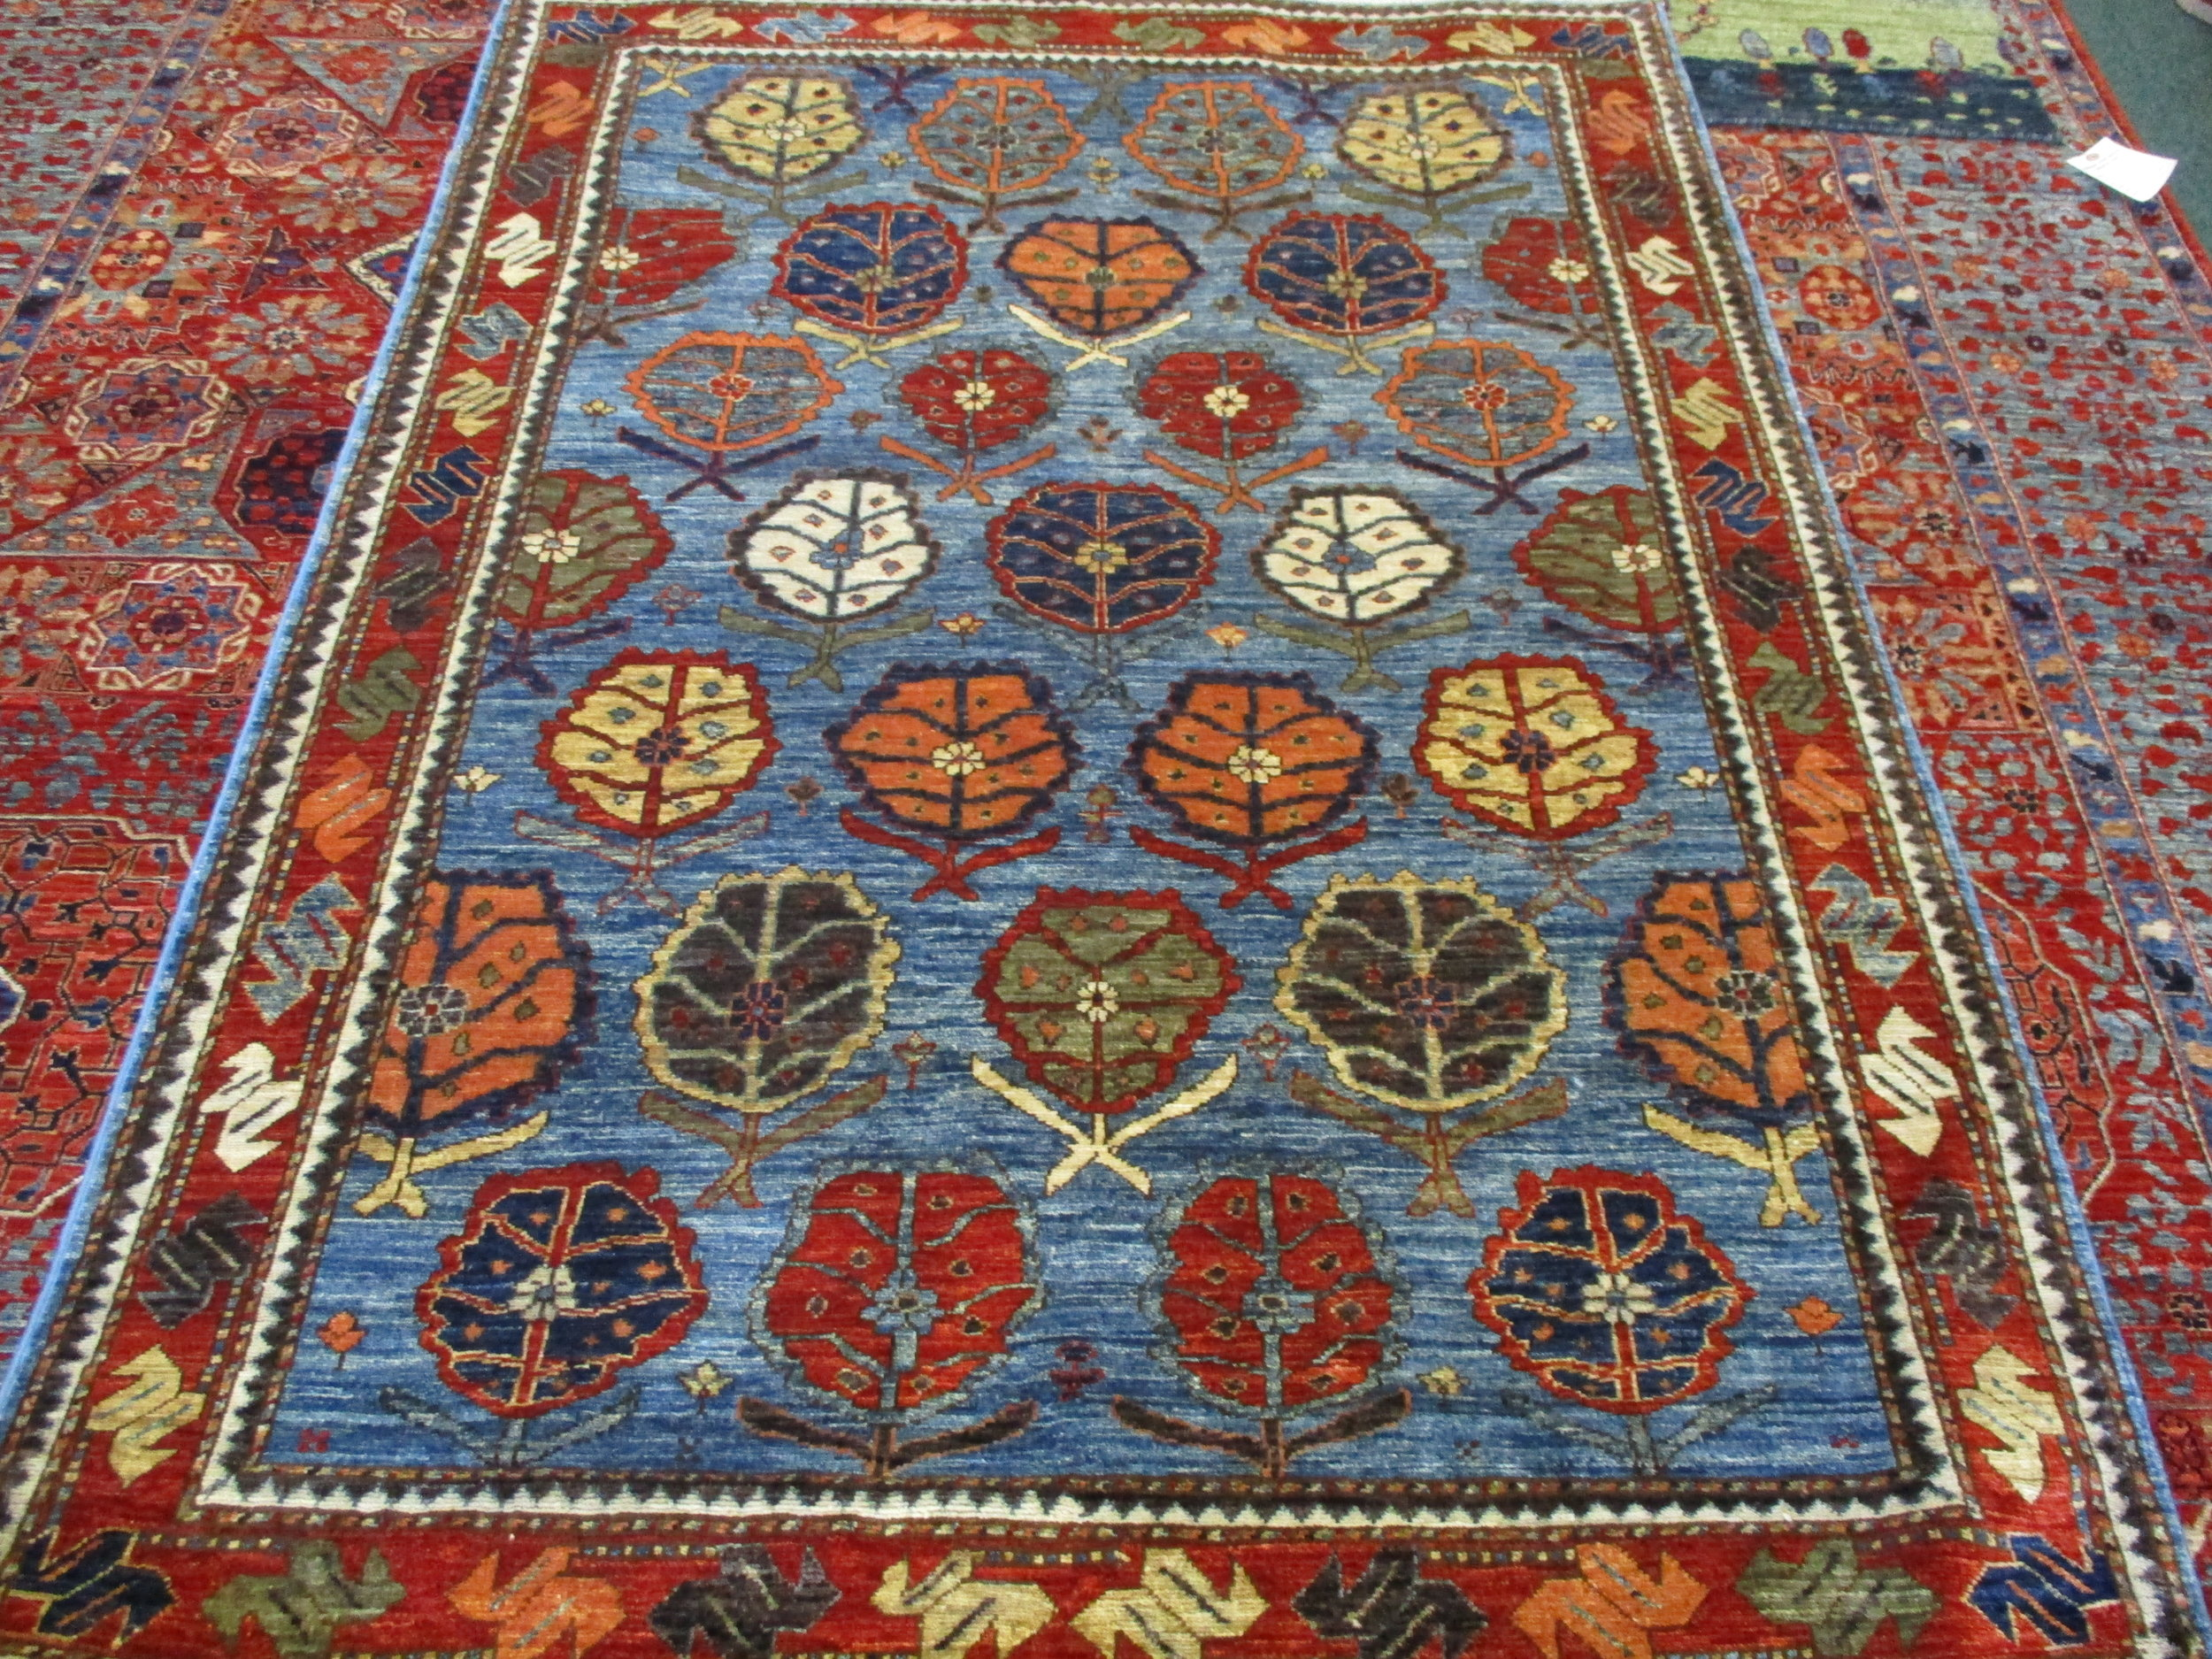 "#44) 4'2"" x 6' Beautiful Afghan rug in a leaf inspired tribal design."